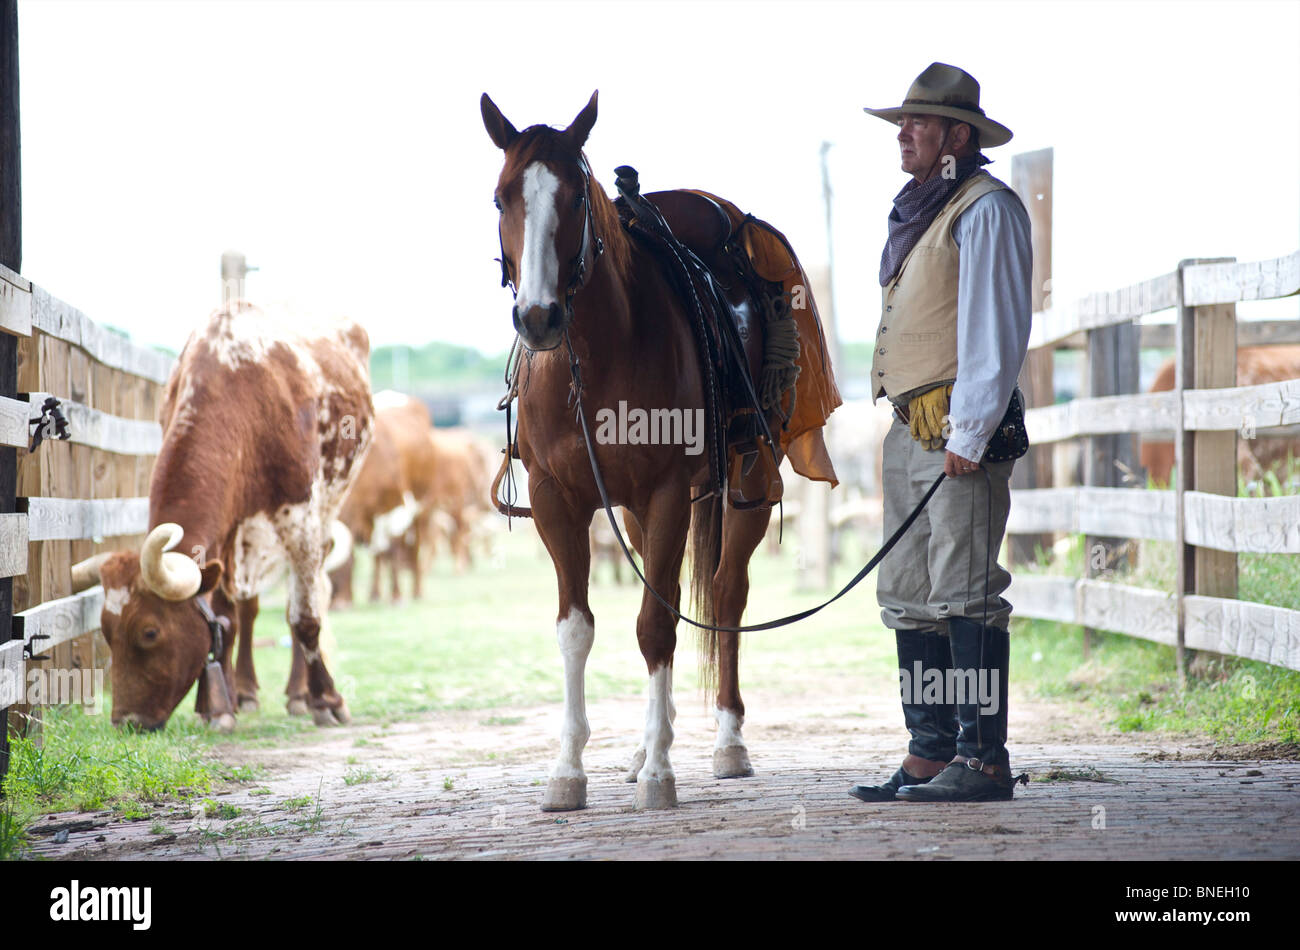 Cowboy with longhorns on ranch in Stockyard in Fort Worth, Texas, USA - Stock Image